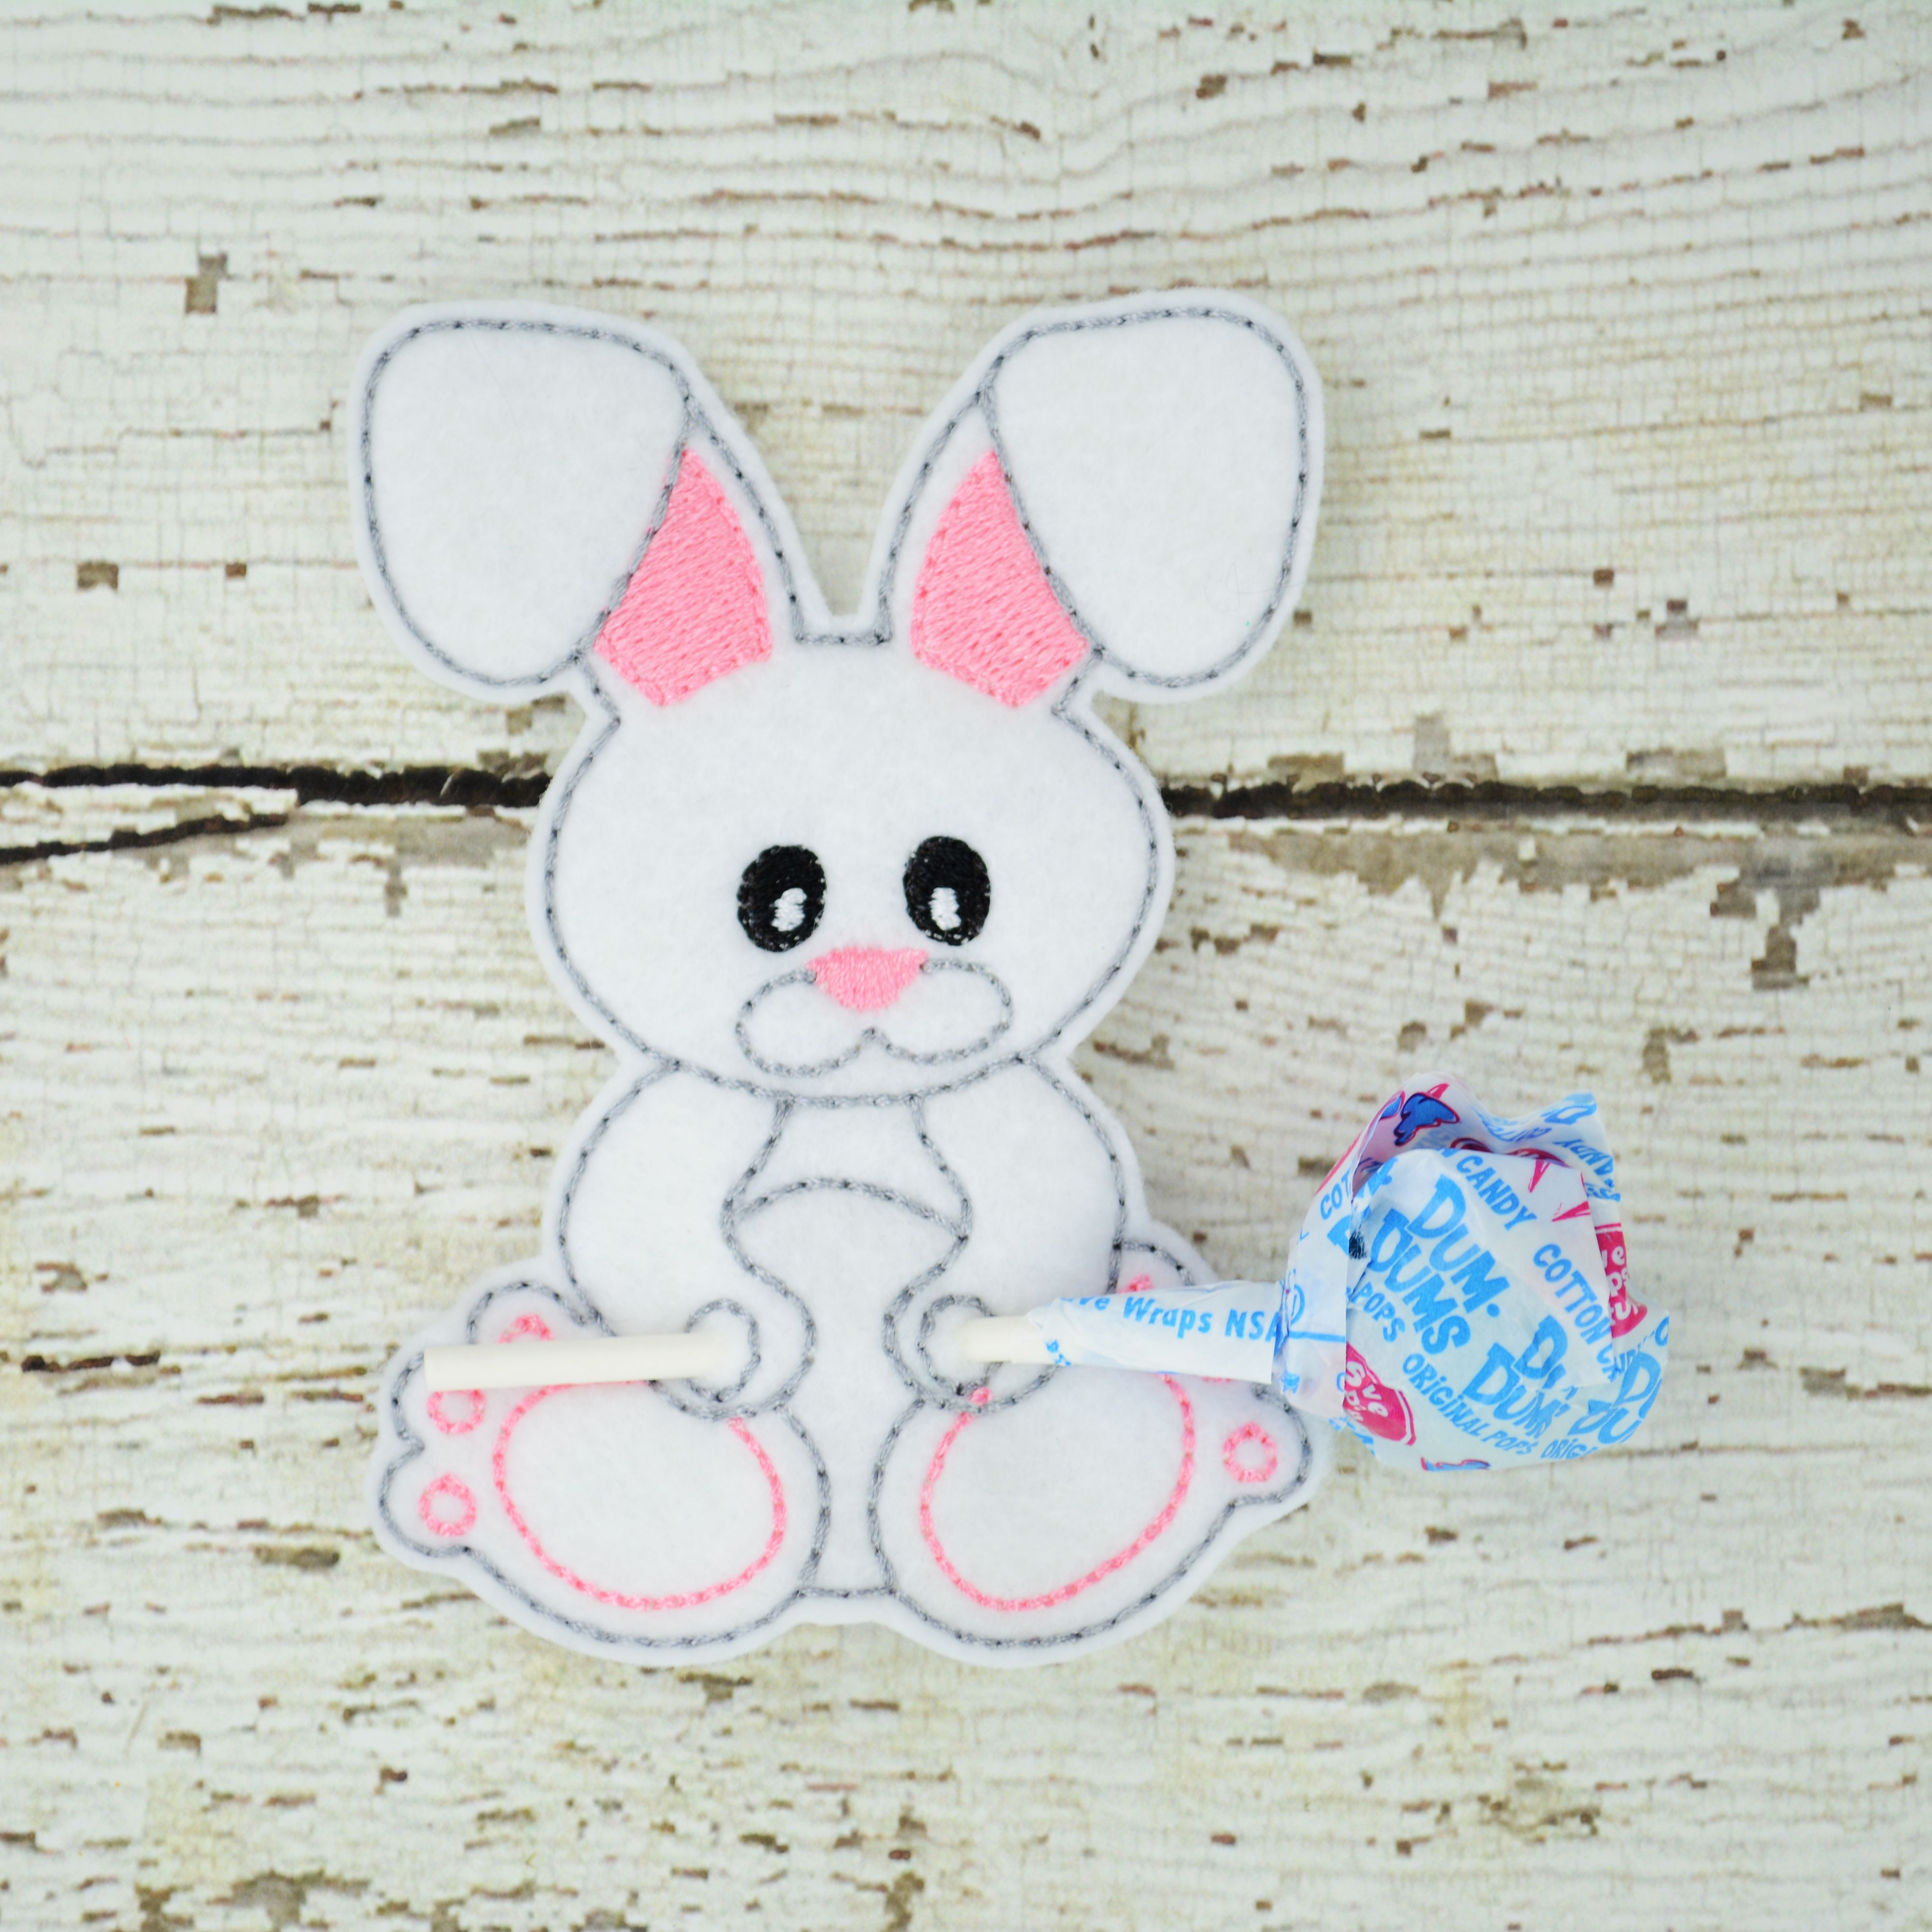 Bunny sucker holder small gift class gift easter gift lollipop bunny sucker holder small gift class gift easter gift lollipop holde party favor thank you gift negle Images